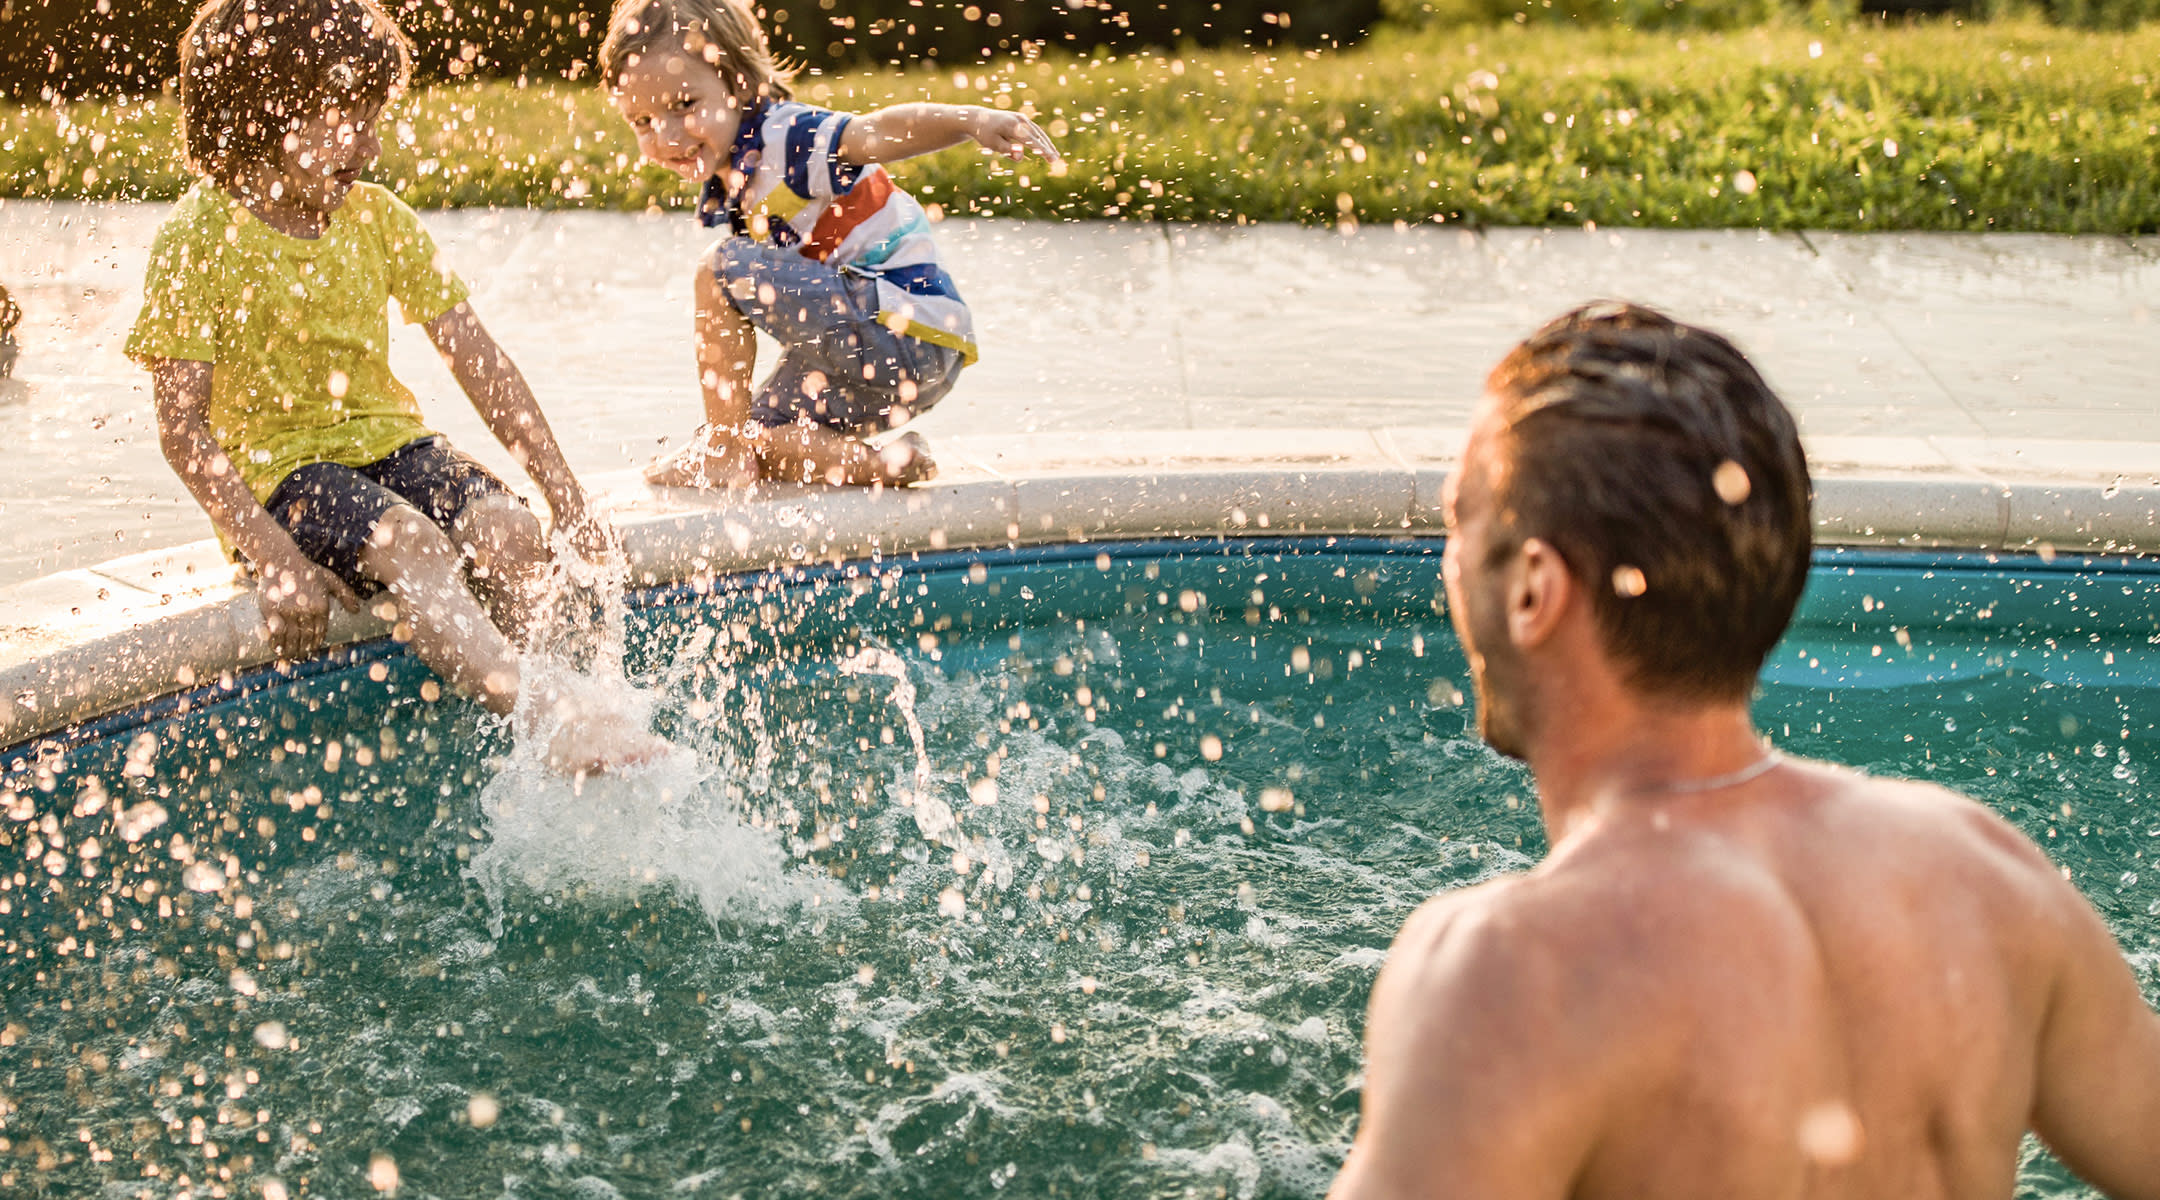 two little boys swimming in pool with dad nearby